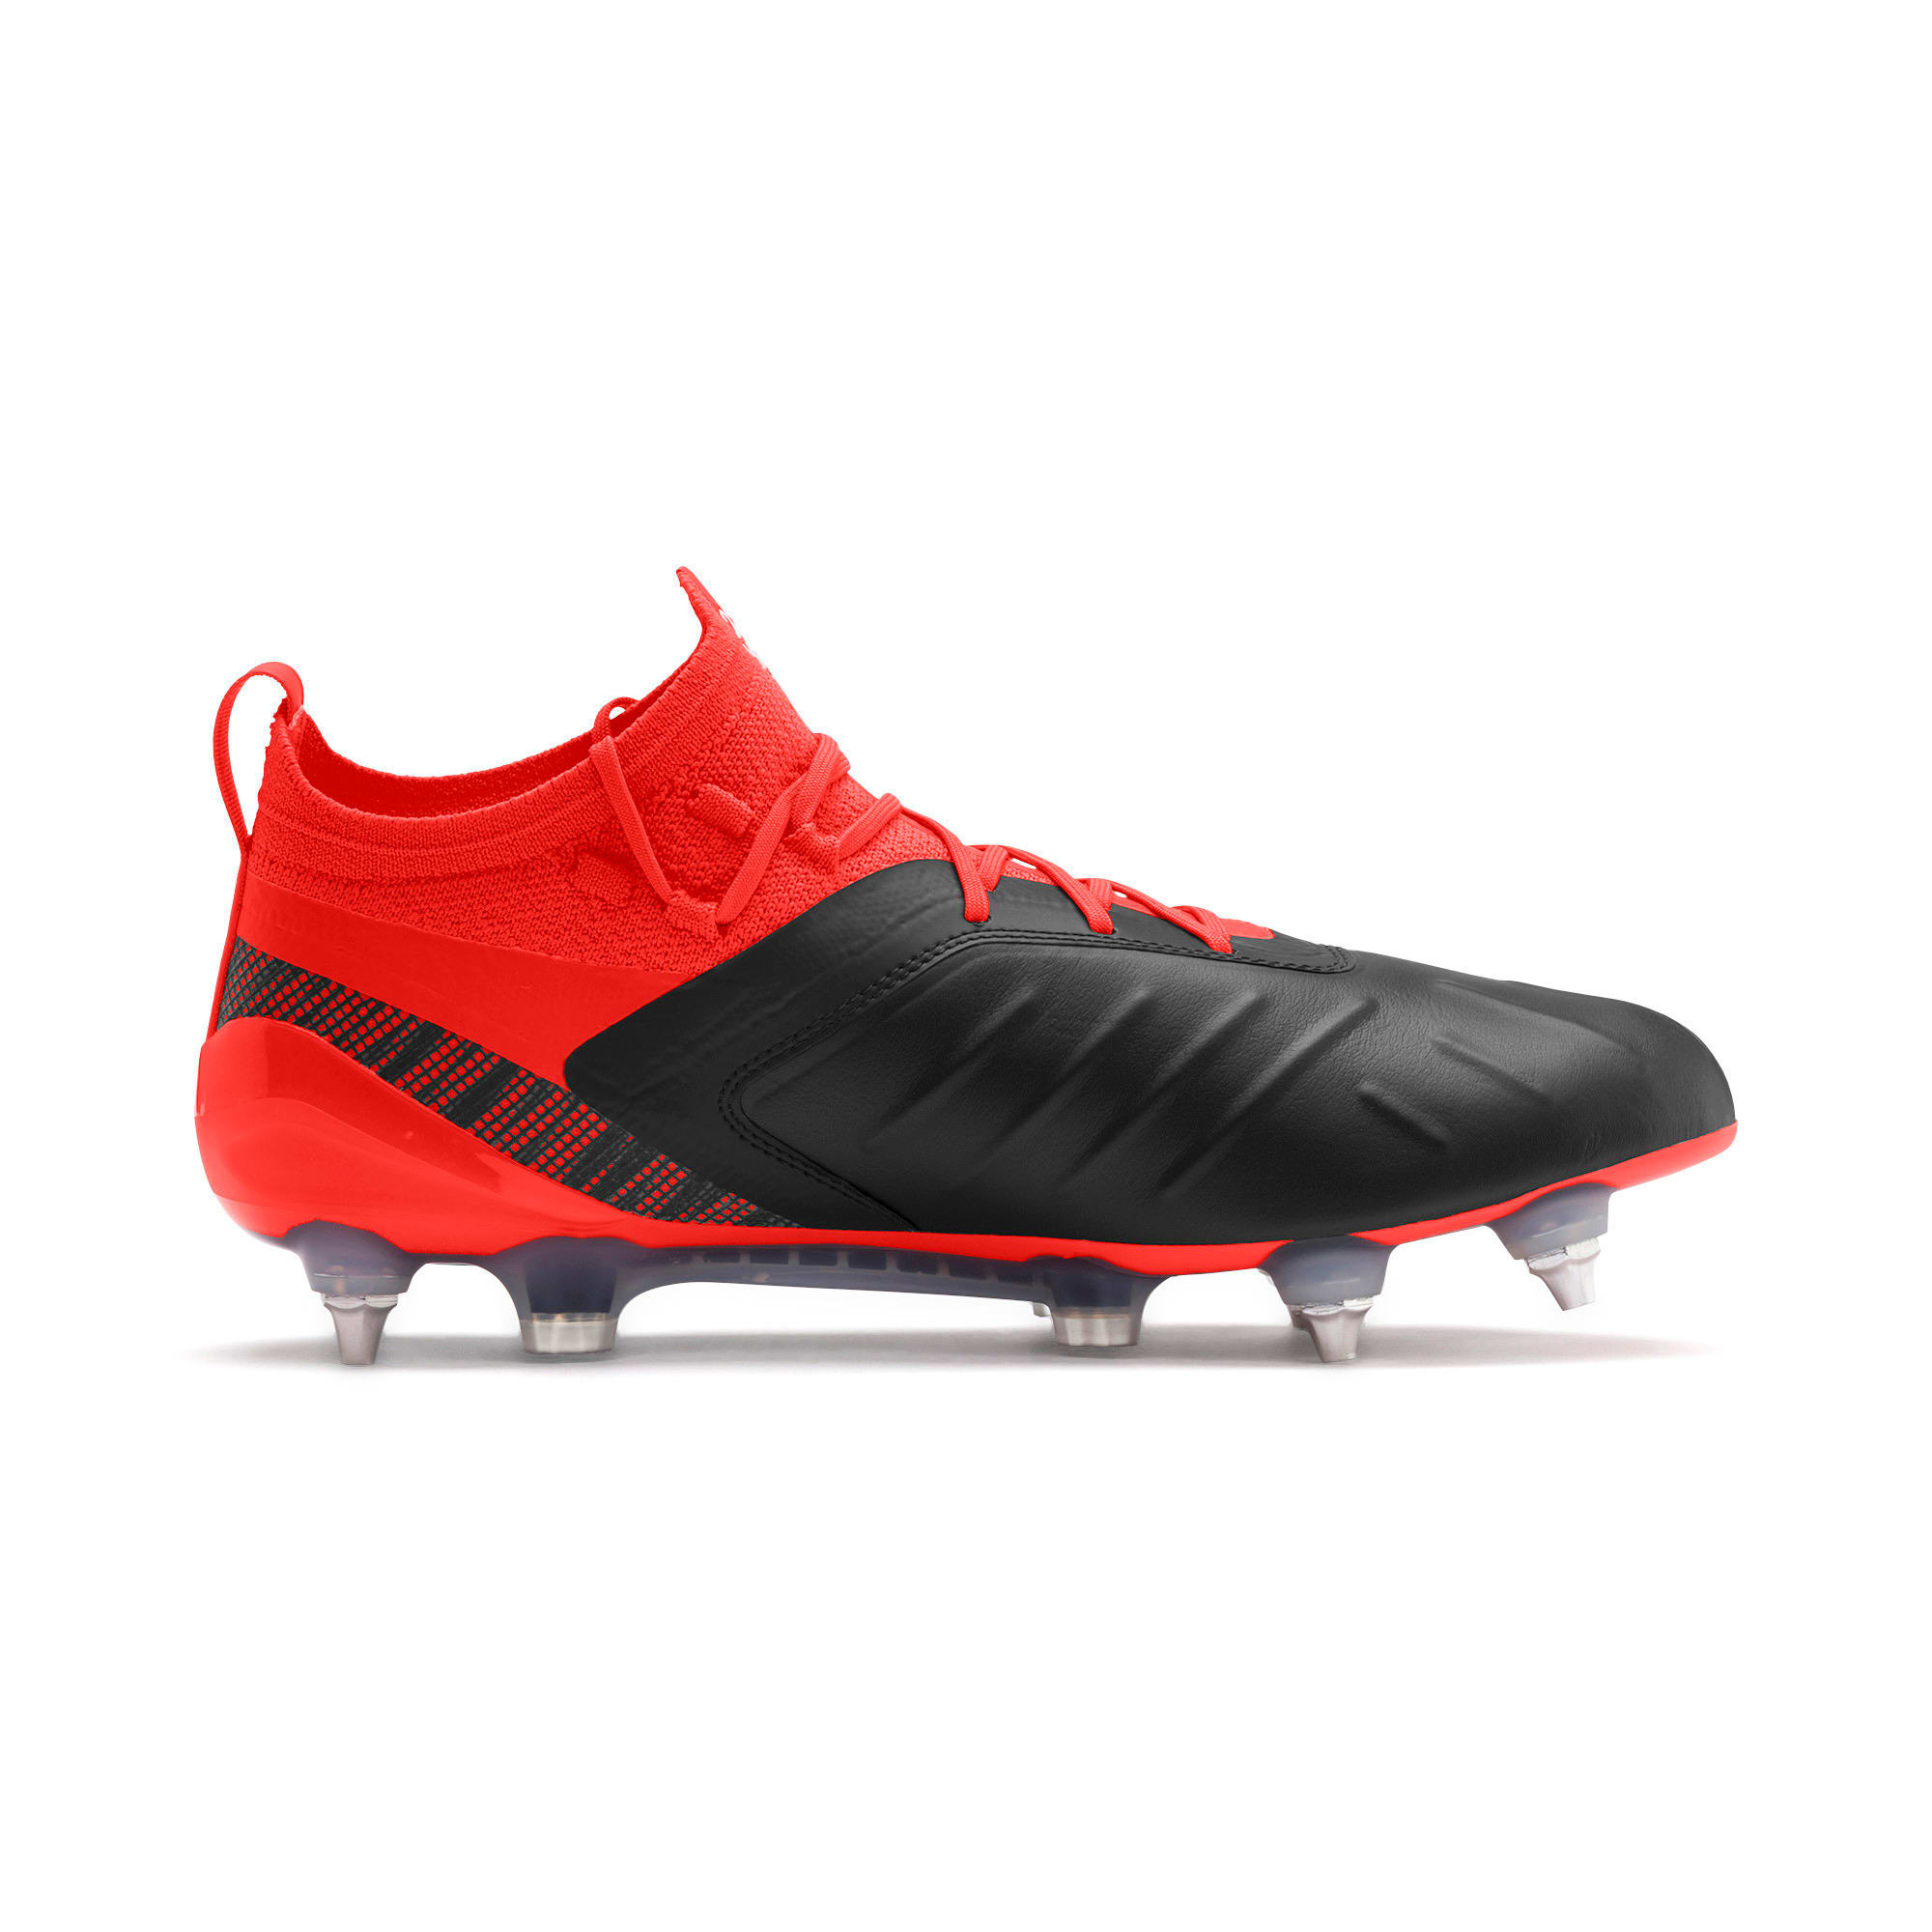 Thumbnail 6 of PUMA ONE 5.1 MxSG Football Boots, Black-Nrgy Red-Aged Silver, medium